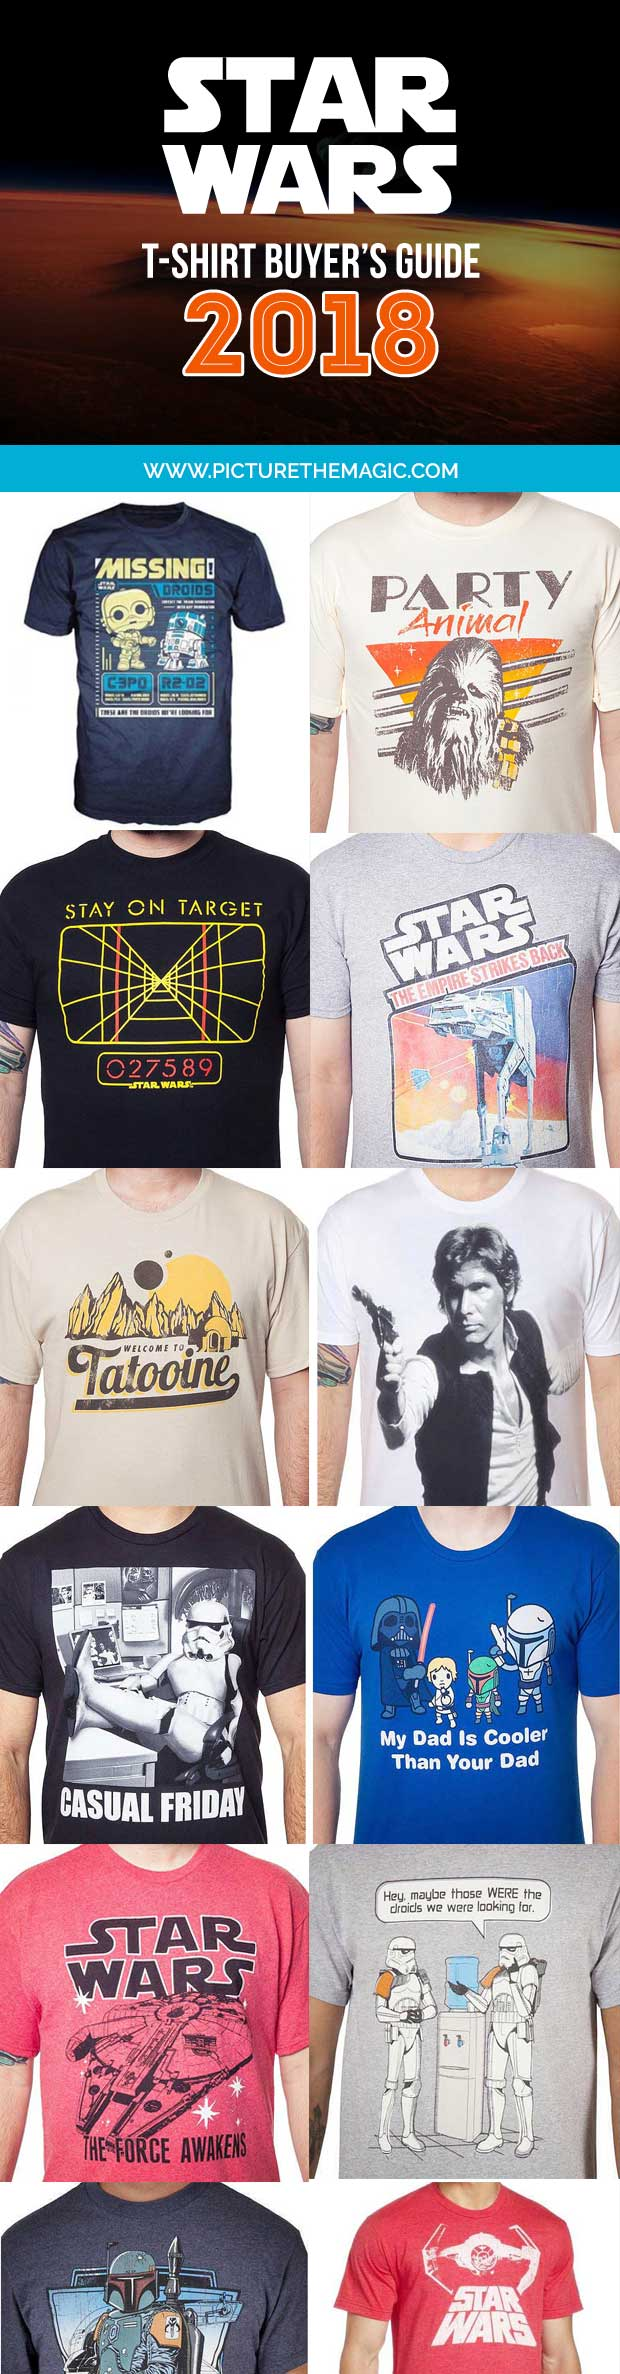 101 EPIC Star Wars T-Shirts for 2018! The best Princess Leia, Darth Vader, Yoda, Han Solo, Kylo Ren, and Chewbacca tshirts of the year.